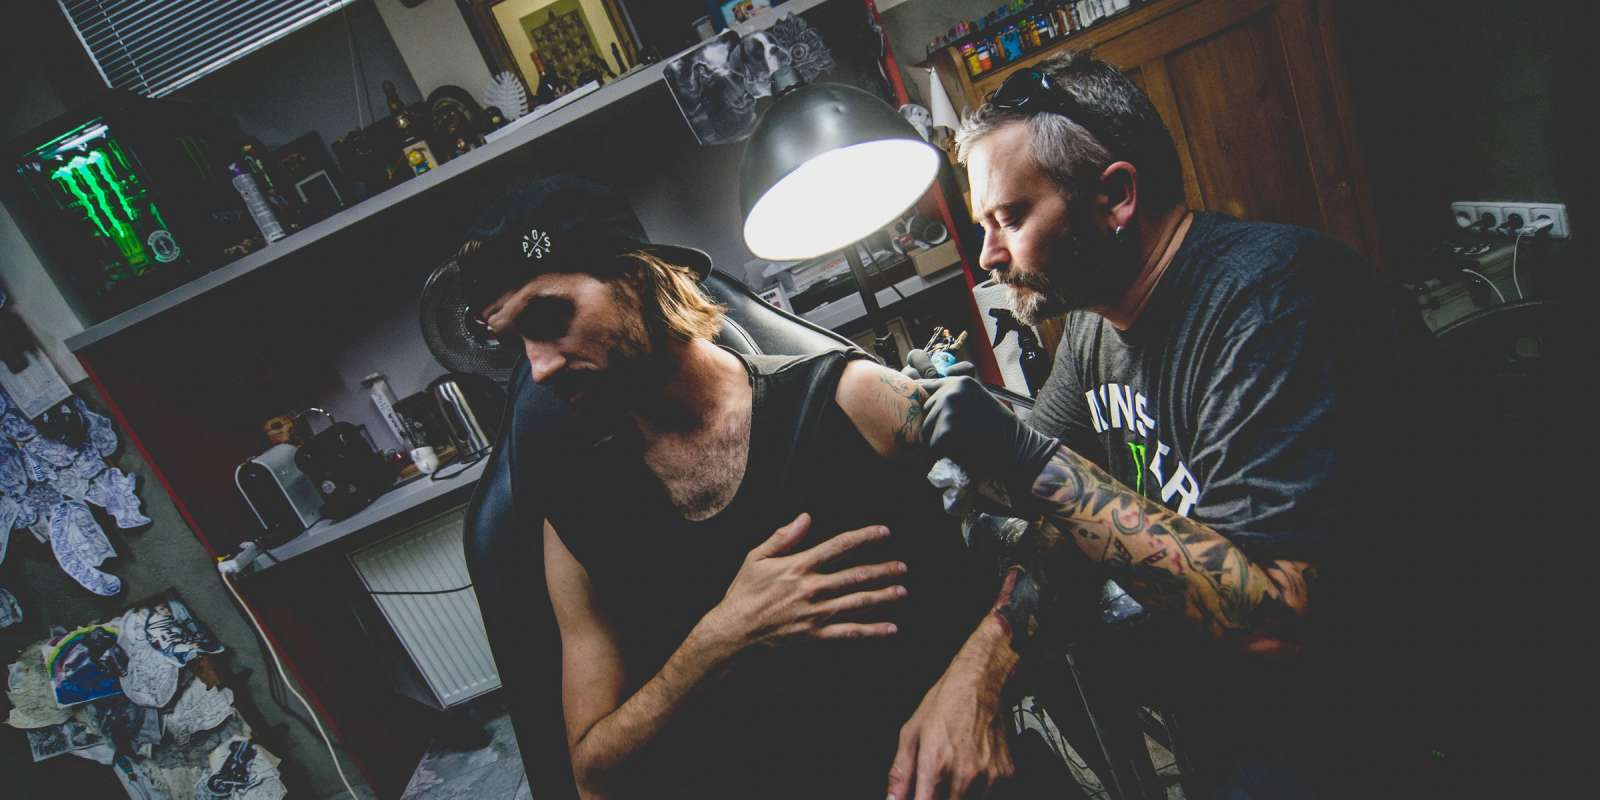 Voky tattoo studio photos, Prague 2018